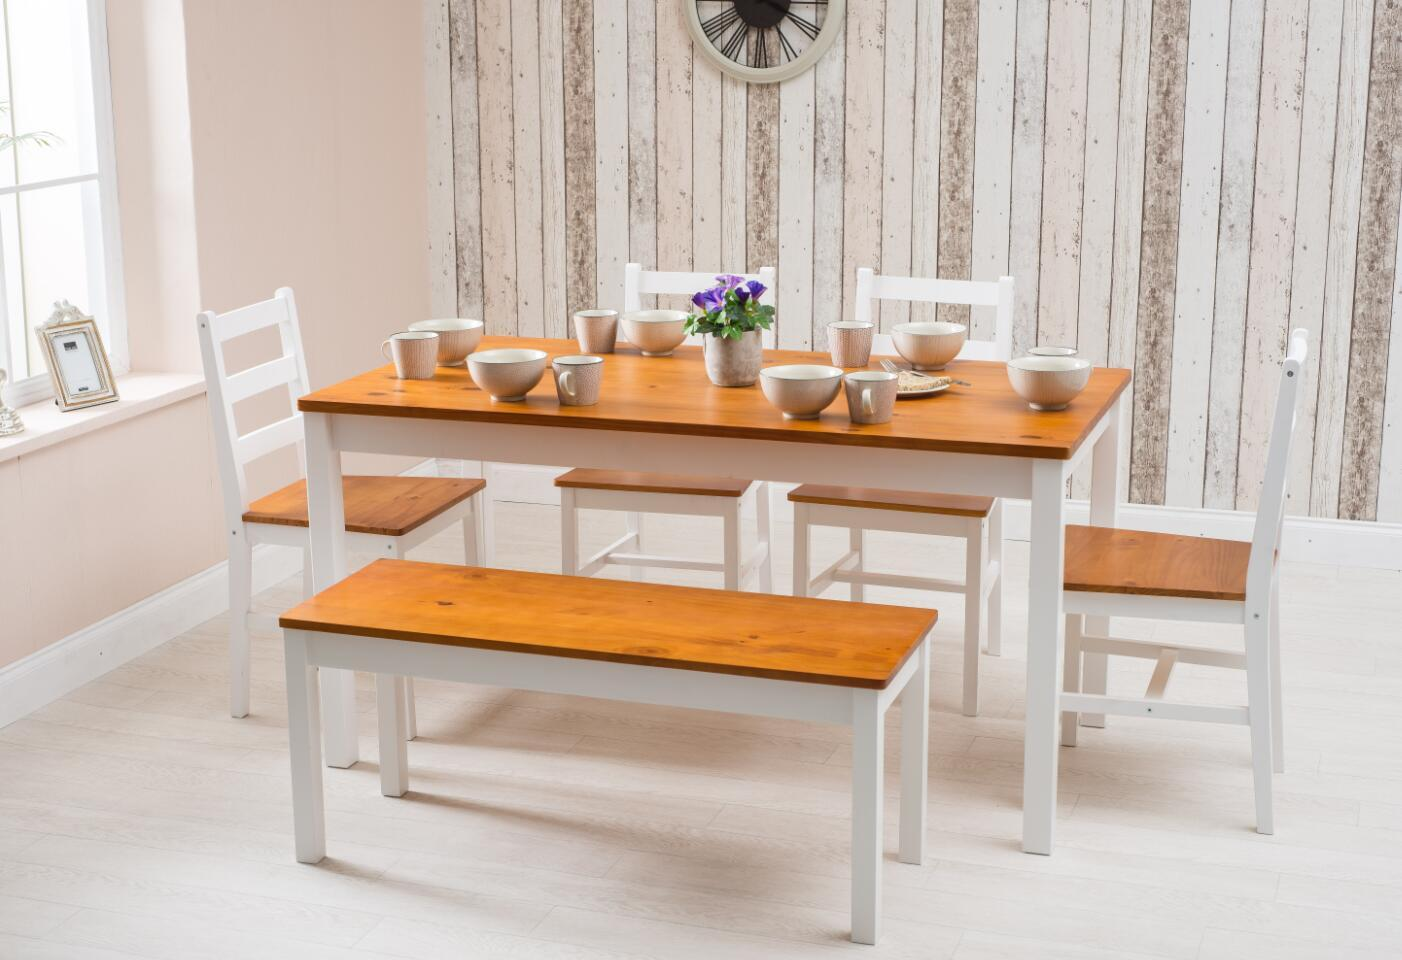 Furnituremaxi Solid Pine Wood Dining Table 4 Chairs 1 Bench Set Kitchen Home Furniture